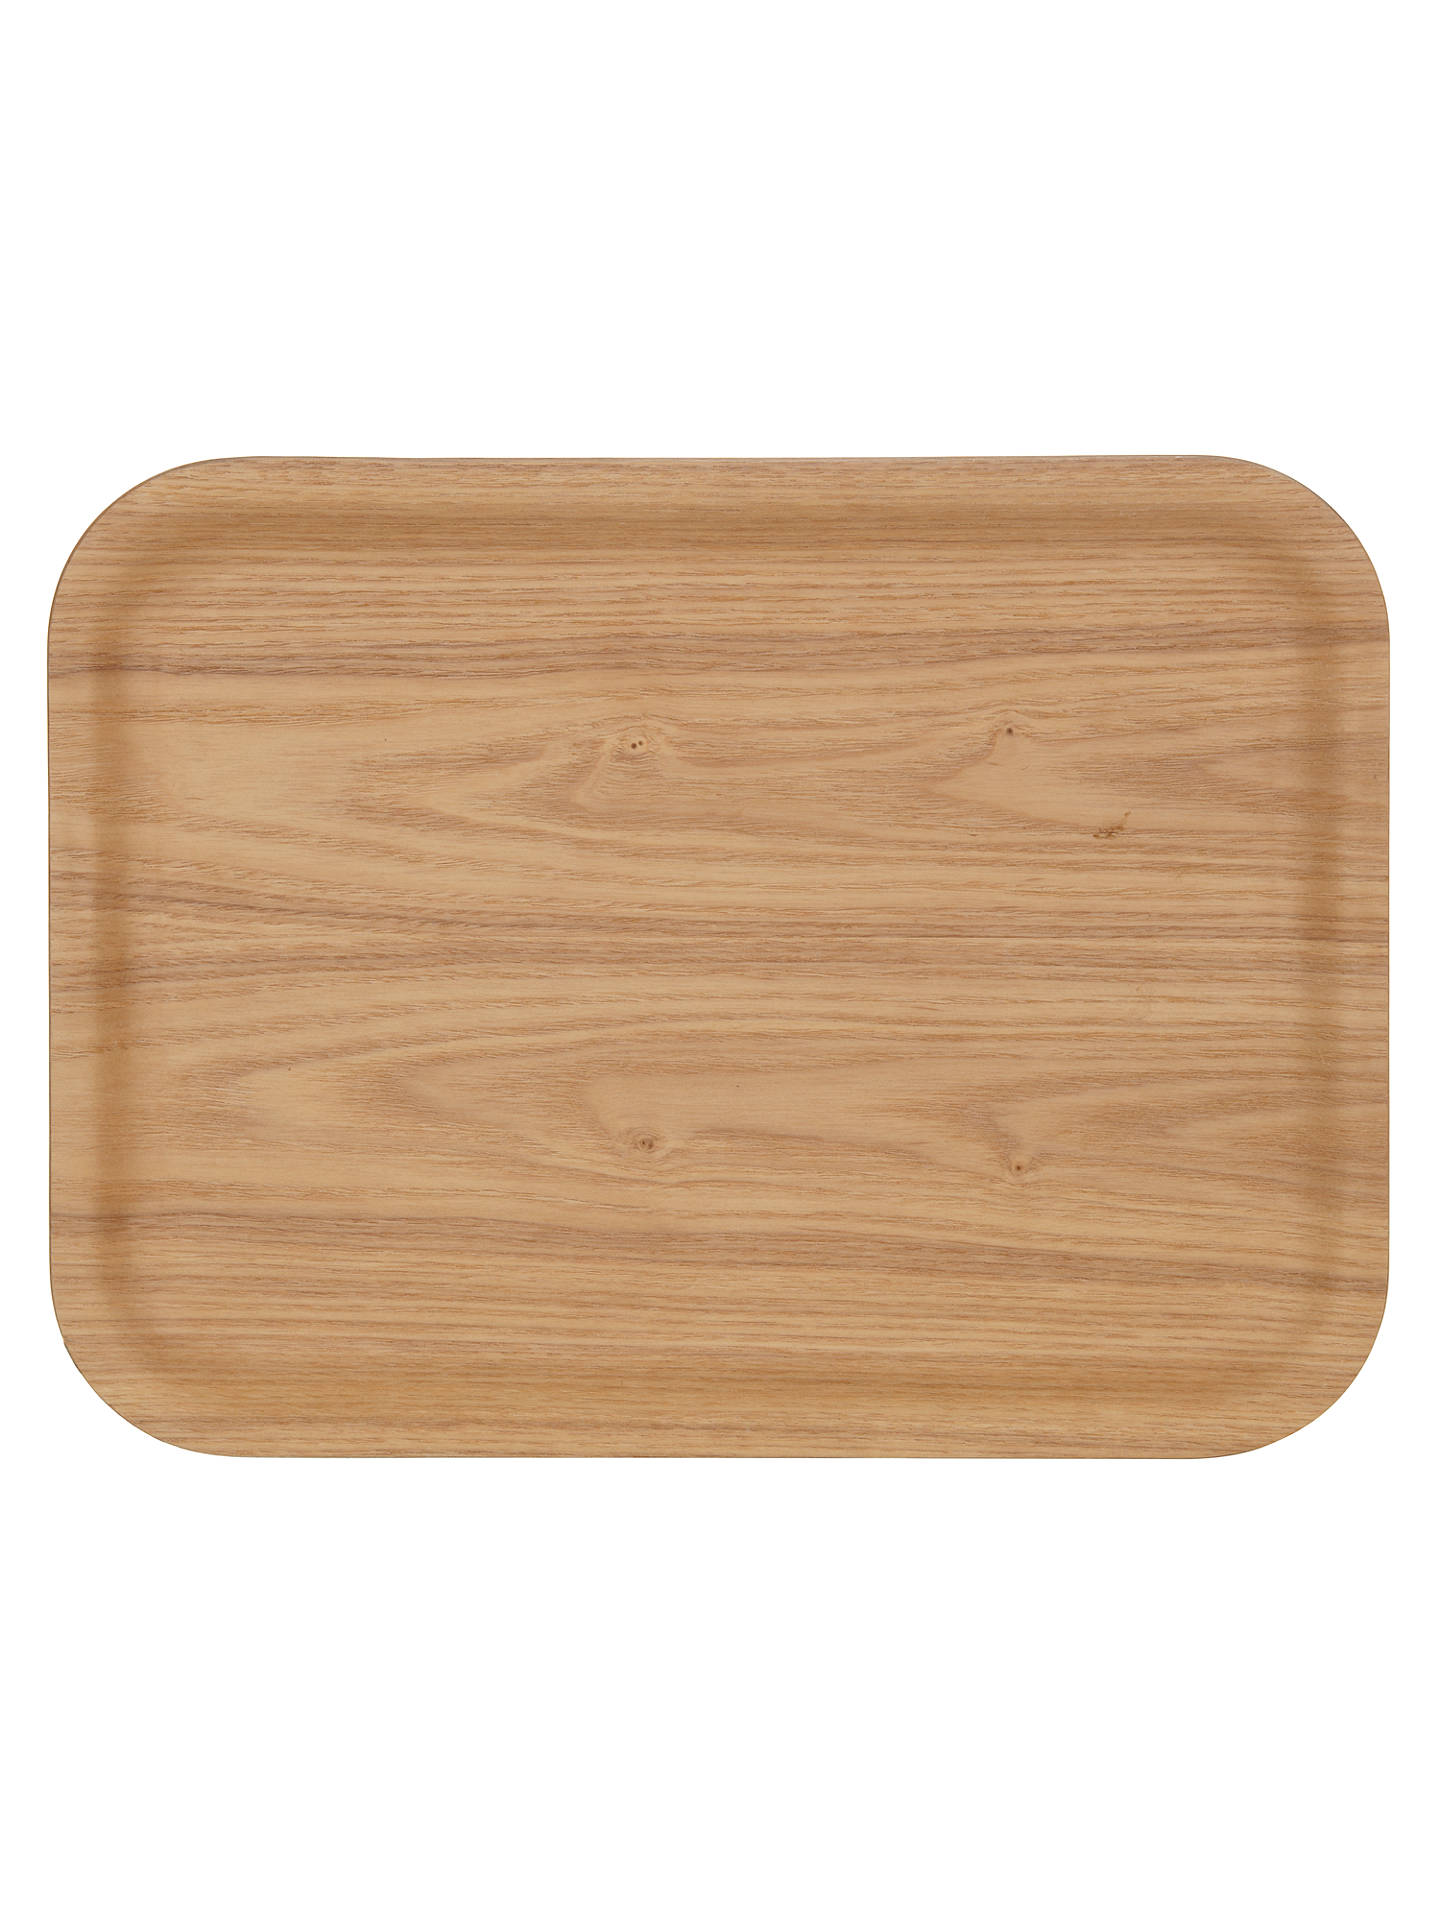 BuyHouse by John Lewis Wooden Tray, Medium Online at johnlewis.com